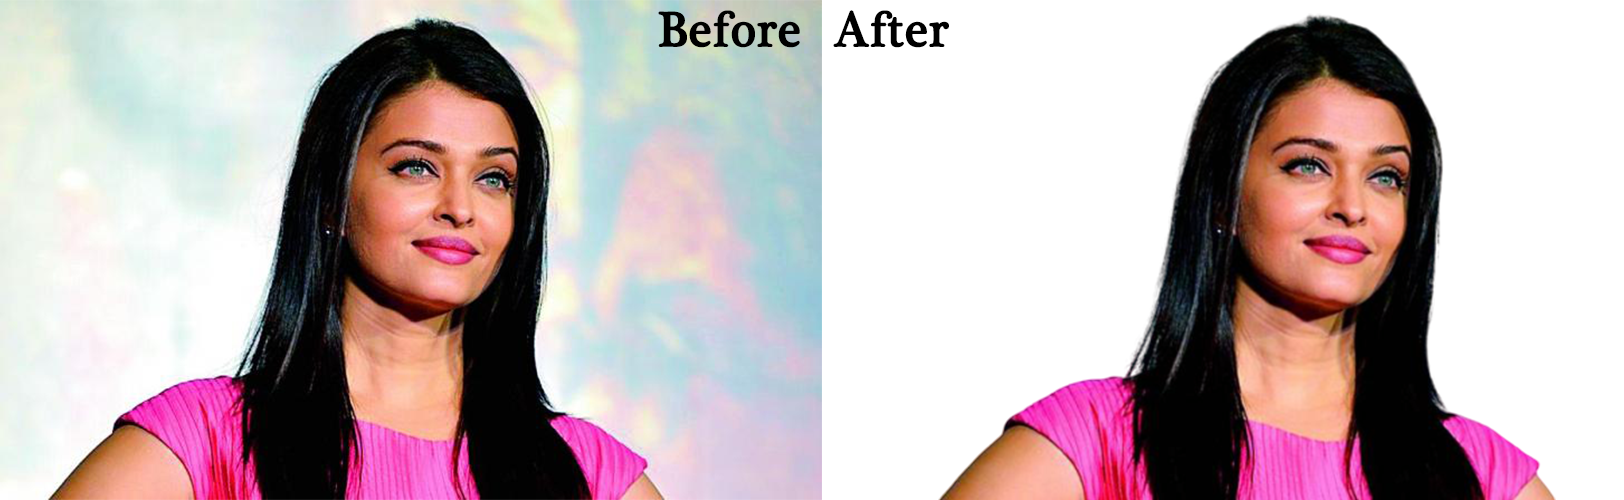 background removal 10 images 2 hr quickly delivery